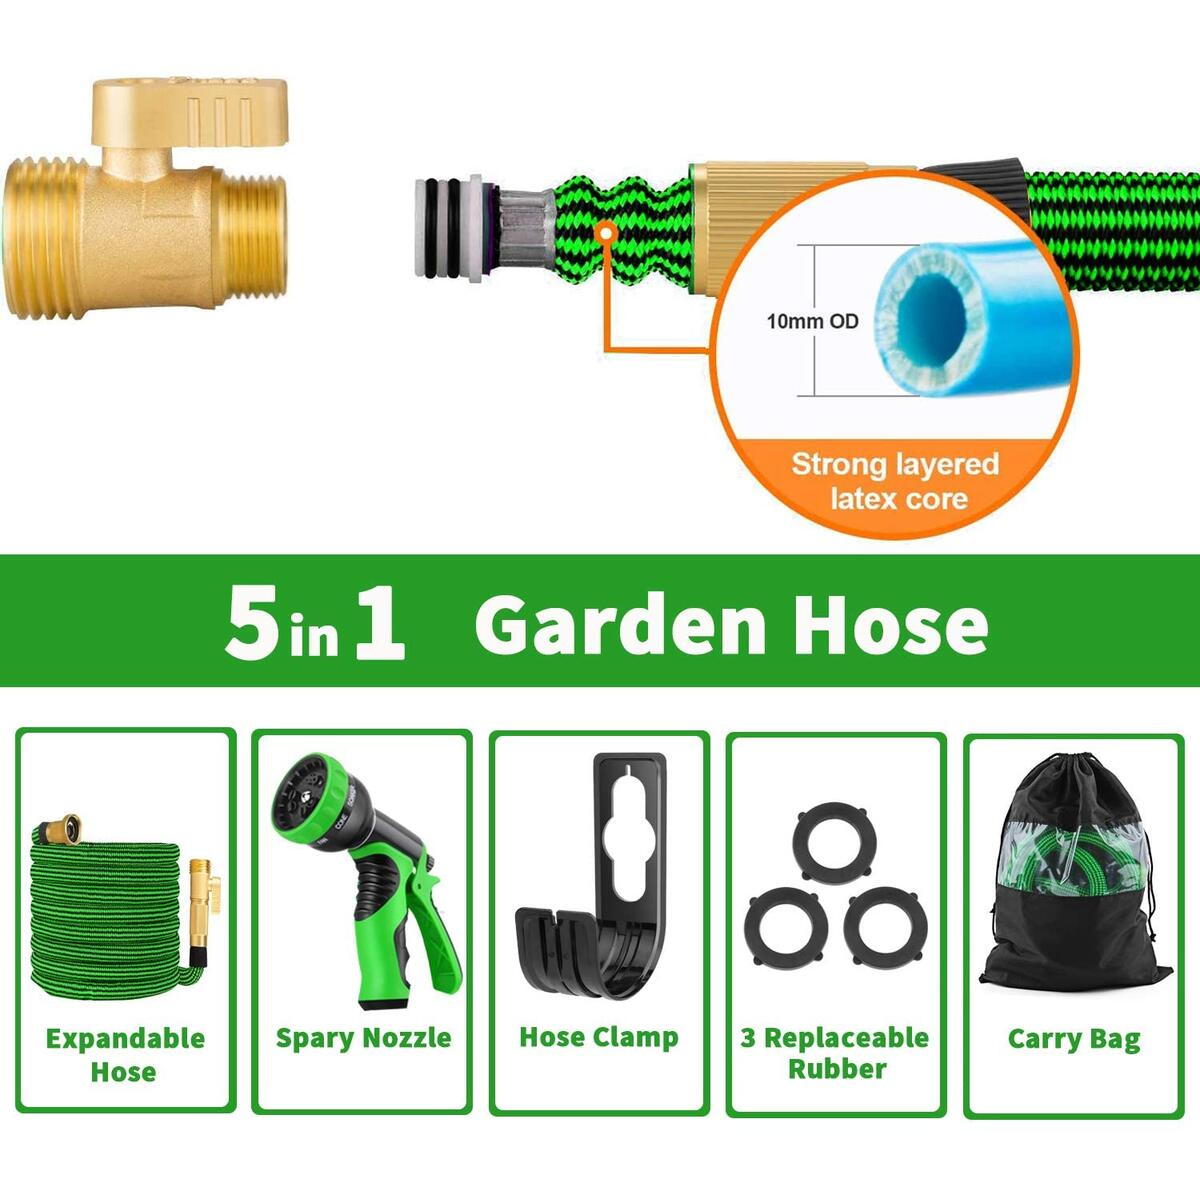 Sunrich Expandable Garden Hose 50ft Expanding flexible Water Hose retractable with 9 Function Spray Nozzle Lightweight Durable 3750D Latex Core 3/4